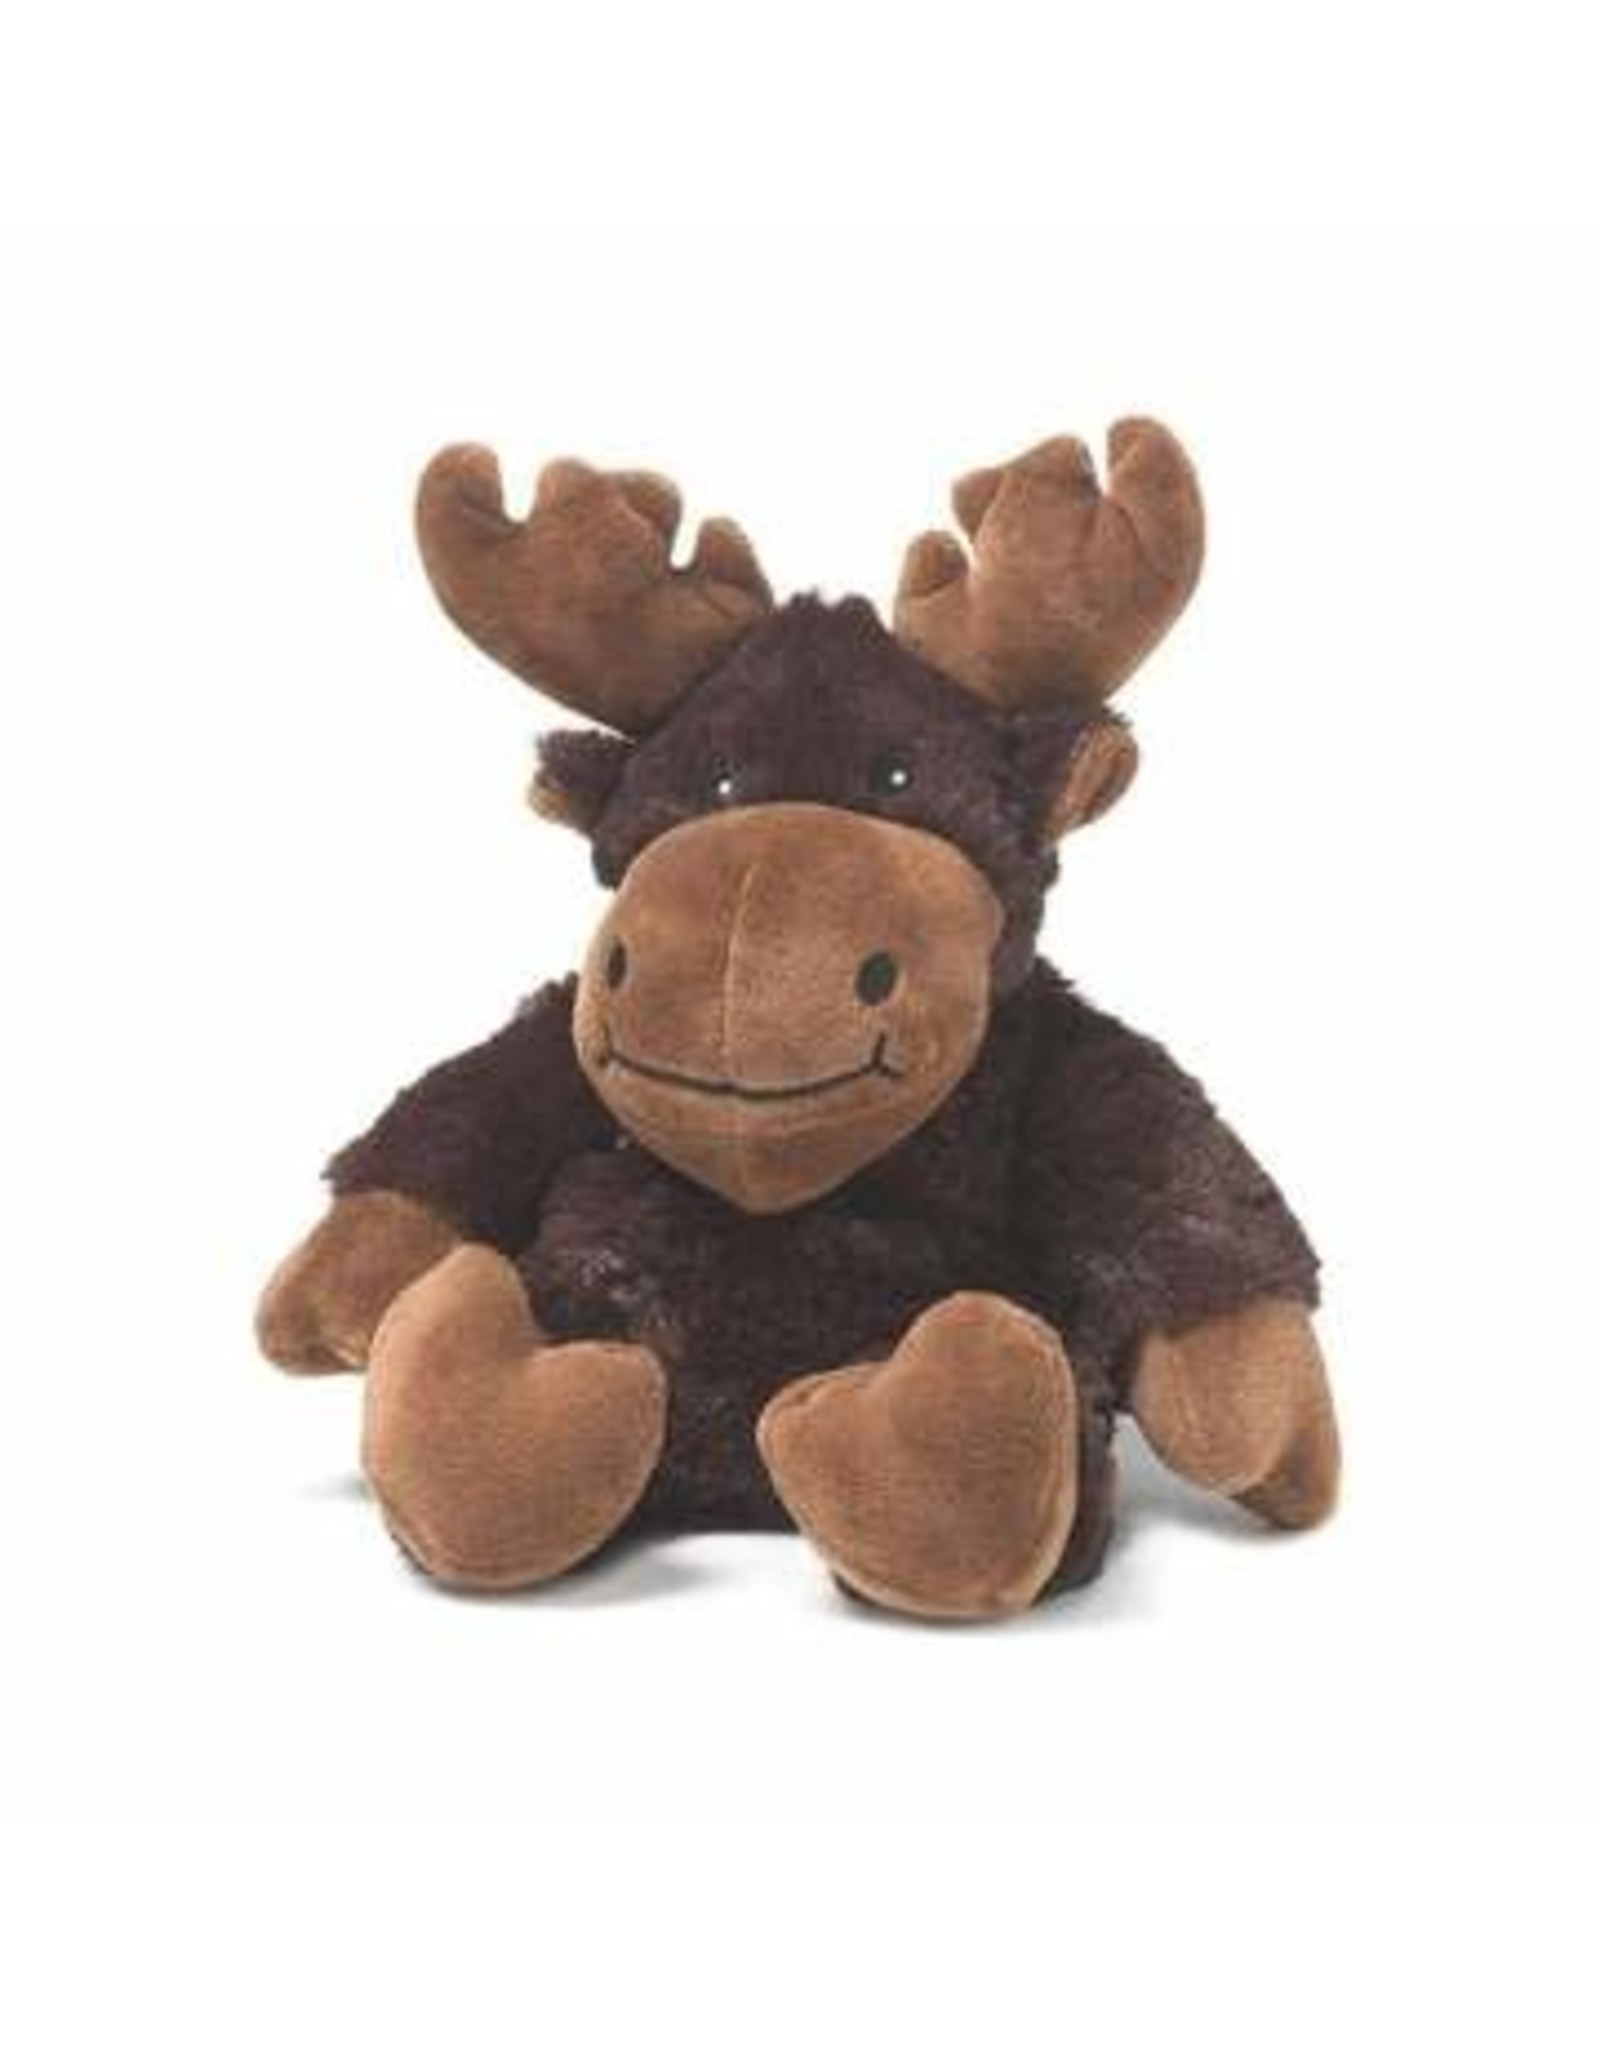 Intelex USA / Warmies MOOSE WARMIE JR